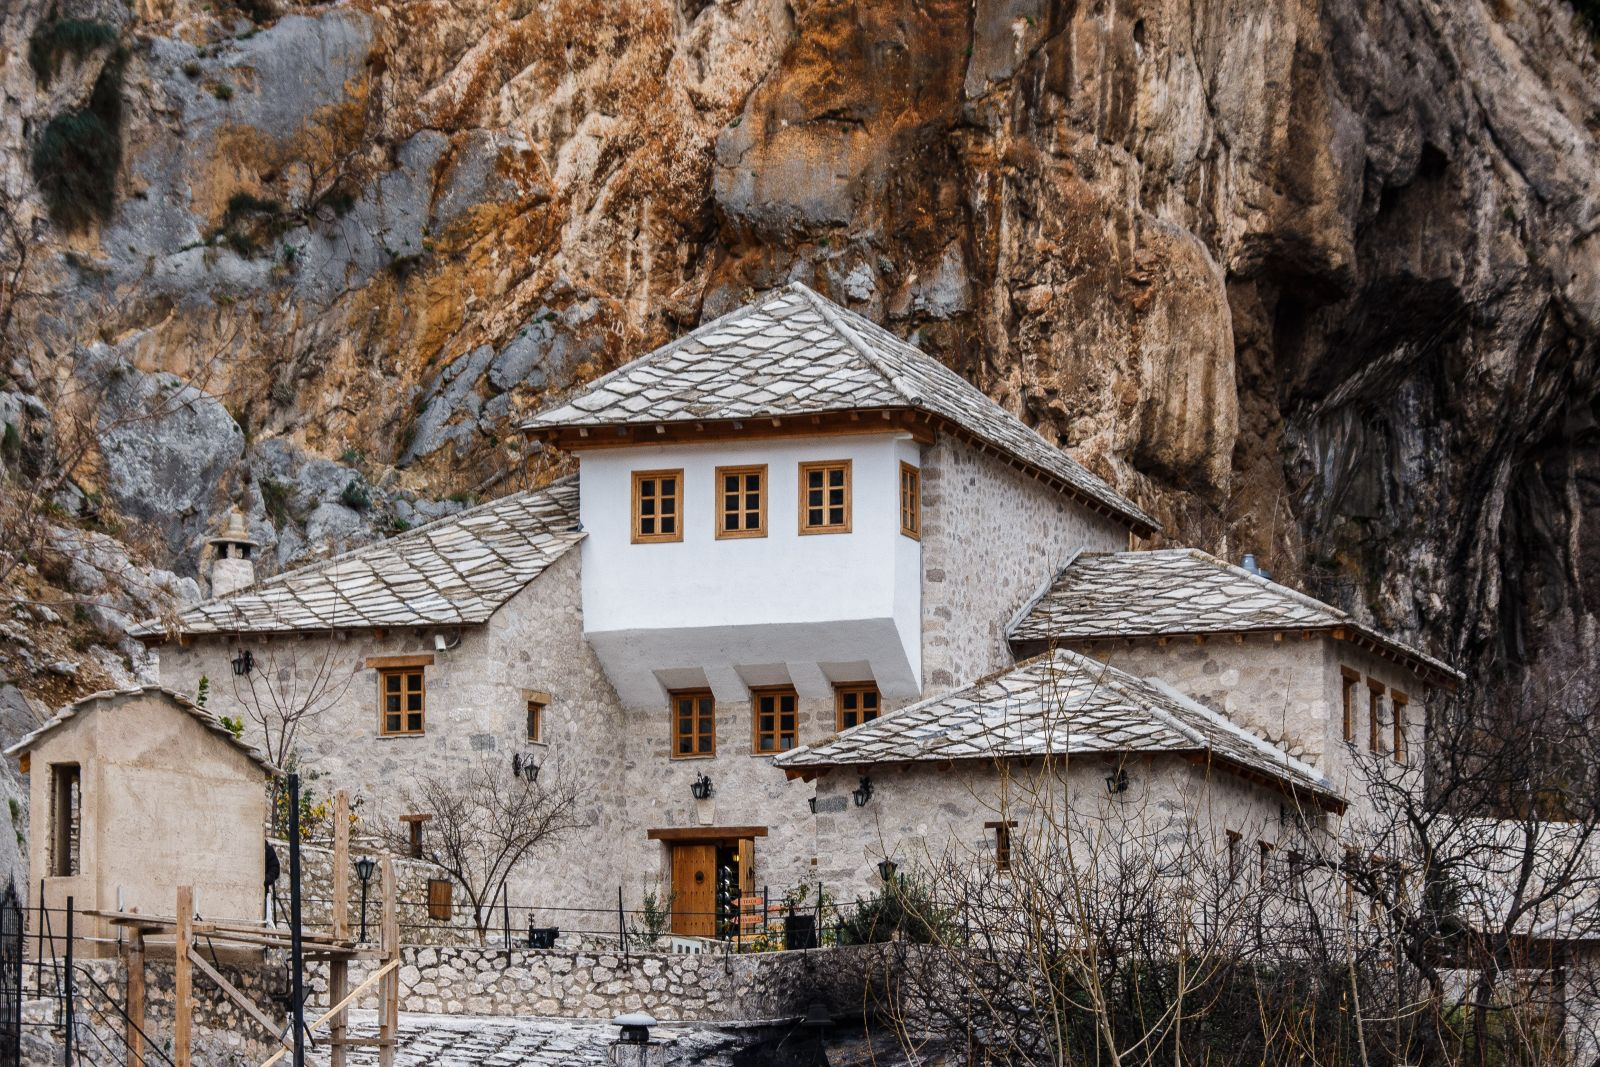 -images-excursions-clash-of-cultures-6-a-bosnian-house.jpg